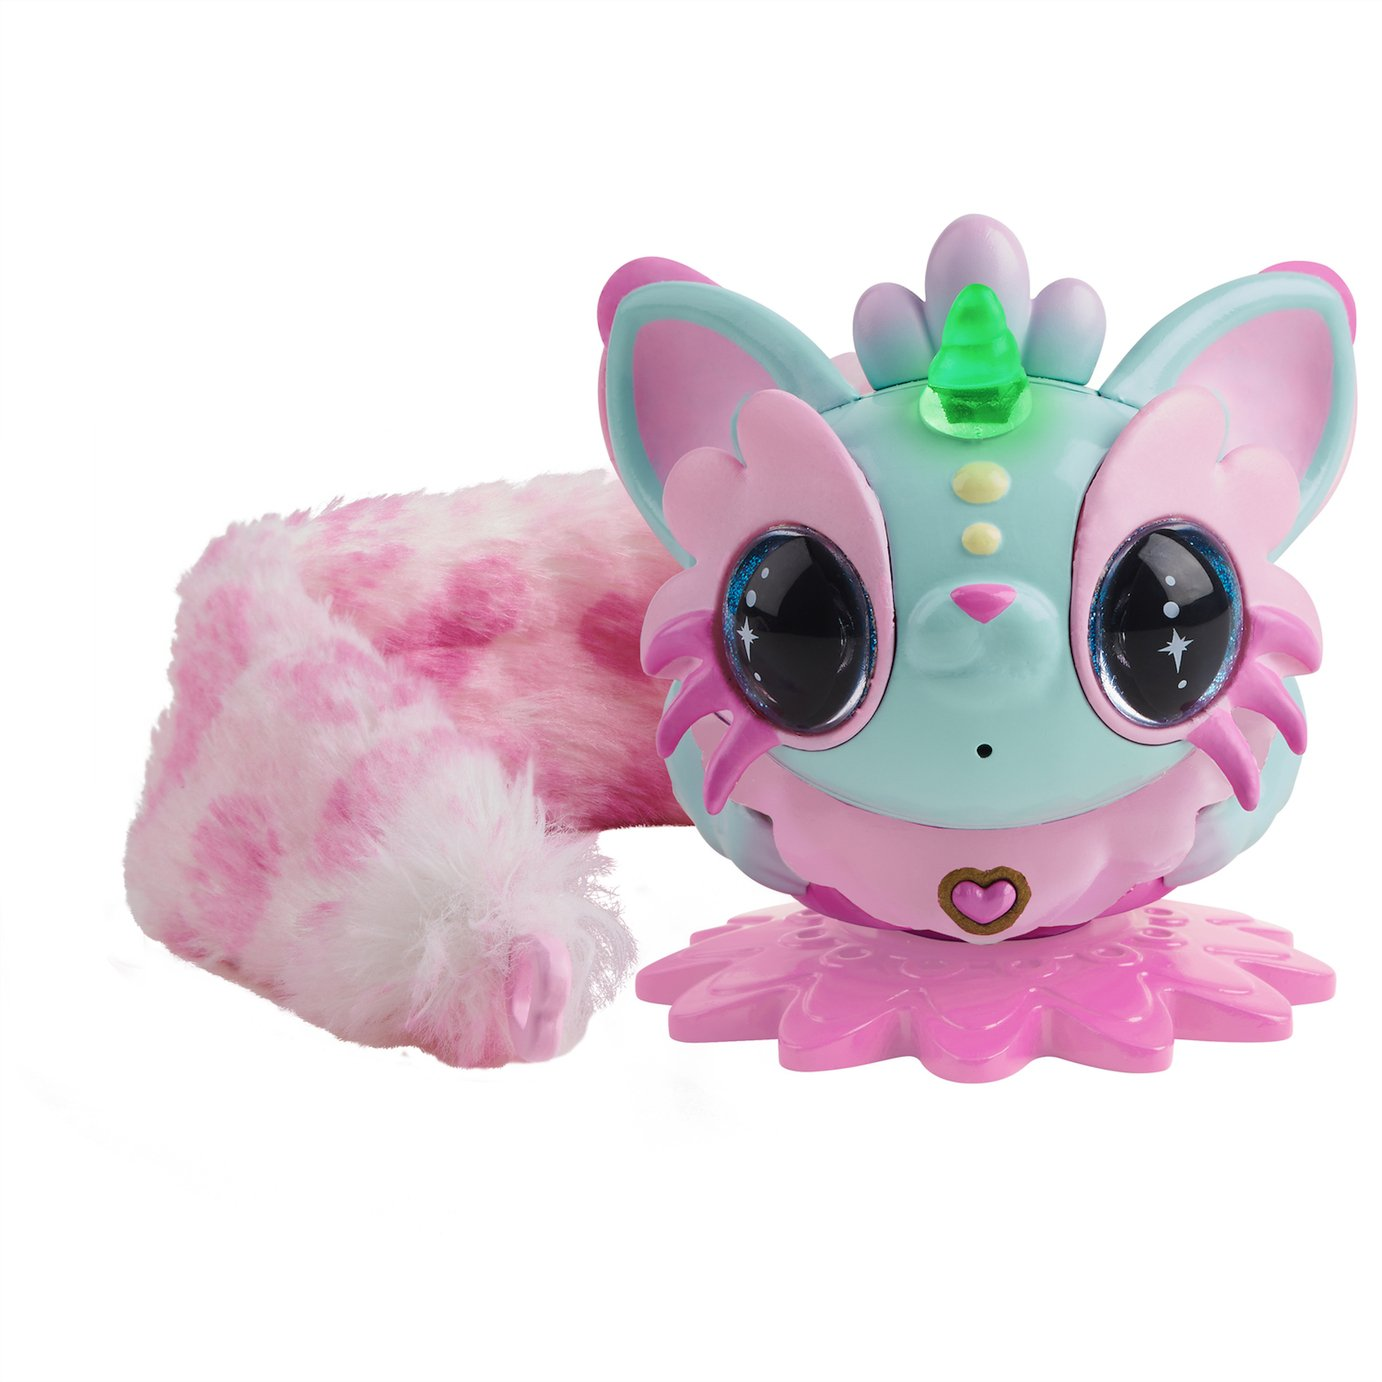 Pixie Belles - Aurora (Turq) - Interactive Enchanted Animal